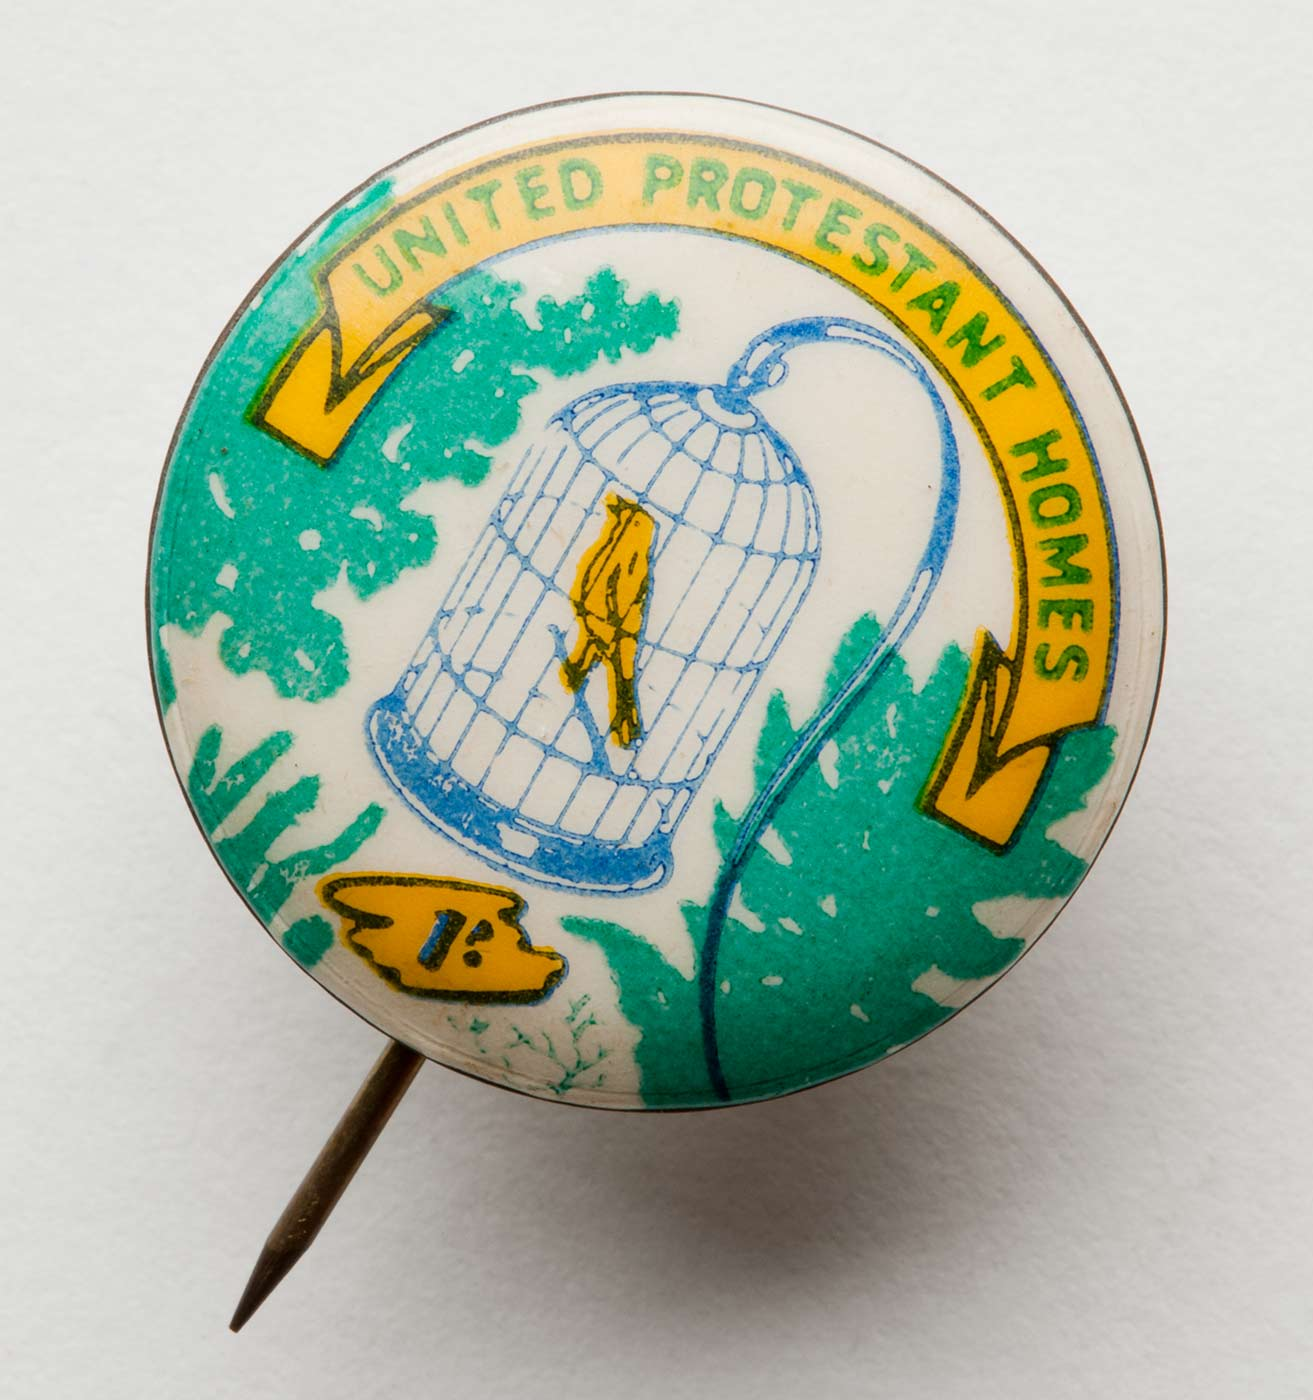 A metal circular badge with a white background showing a blue birdcage in the centre, containing a yellow bird. Green foliage is shown on either side of the birdcage. Text in green, printed on a yellow scroll above the cage, reads 'UNITED PROTESTANT HOMES'. - click to view larger image